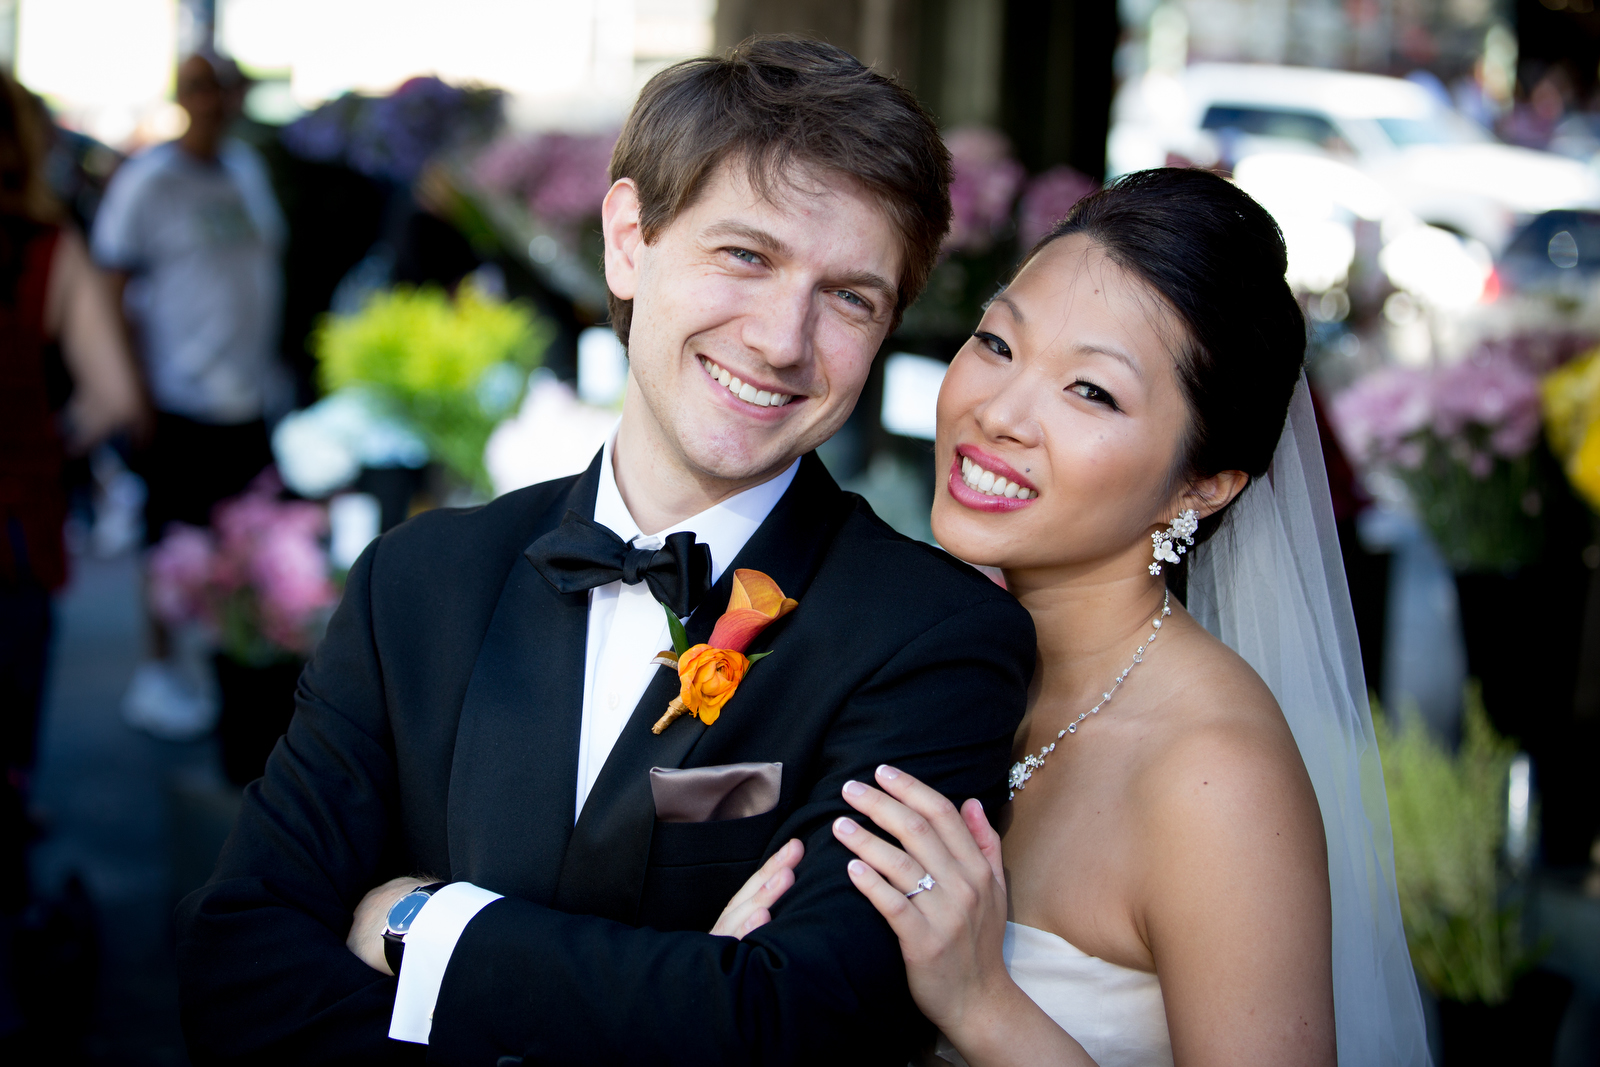 The bride and groom pose for a portrait at the Pike Place Market prior to their wedding at the Seattle Aquarium. (Wedding Photography by Scott Eklund - Red Box Pictures)